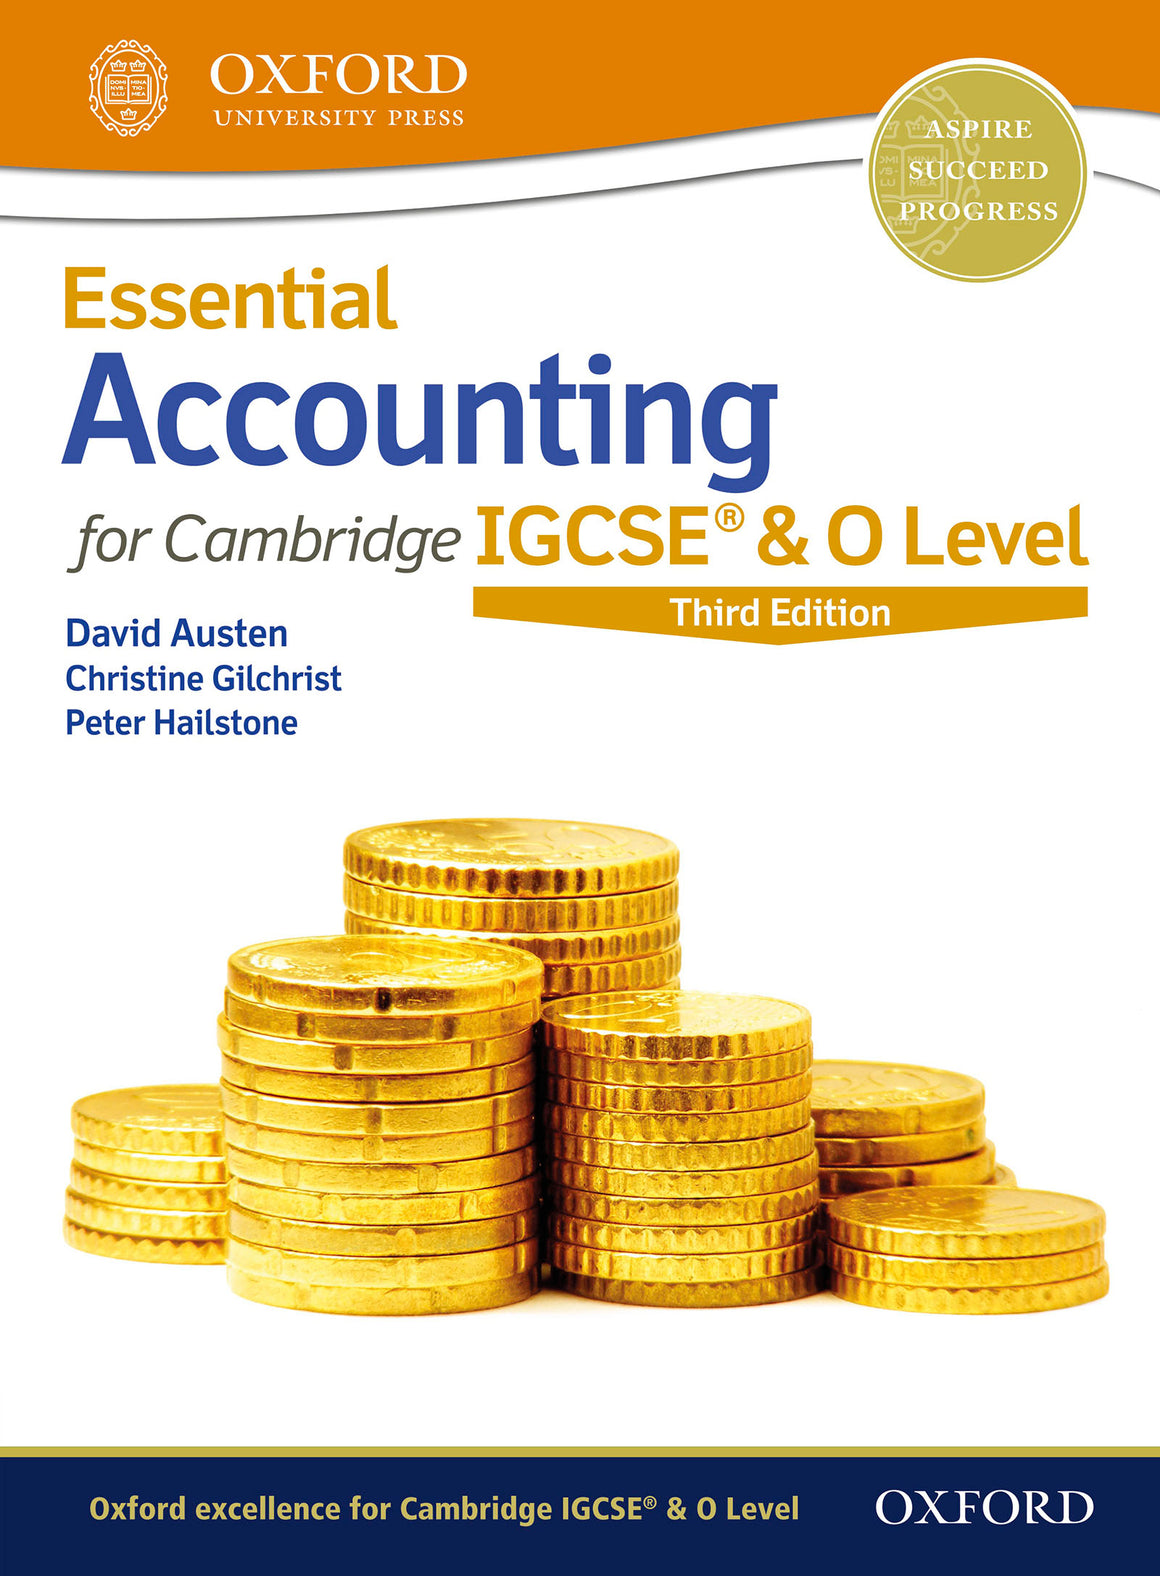 Essential Accounting for Cambridge IGCSE® & O Level